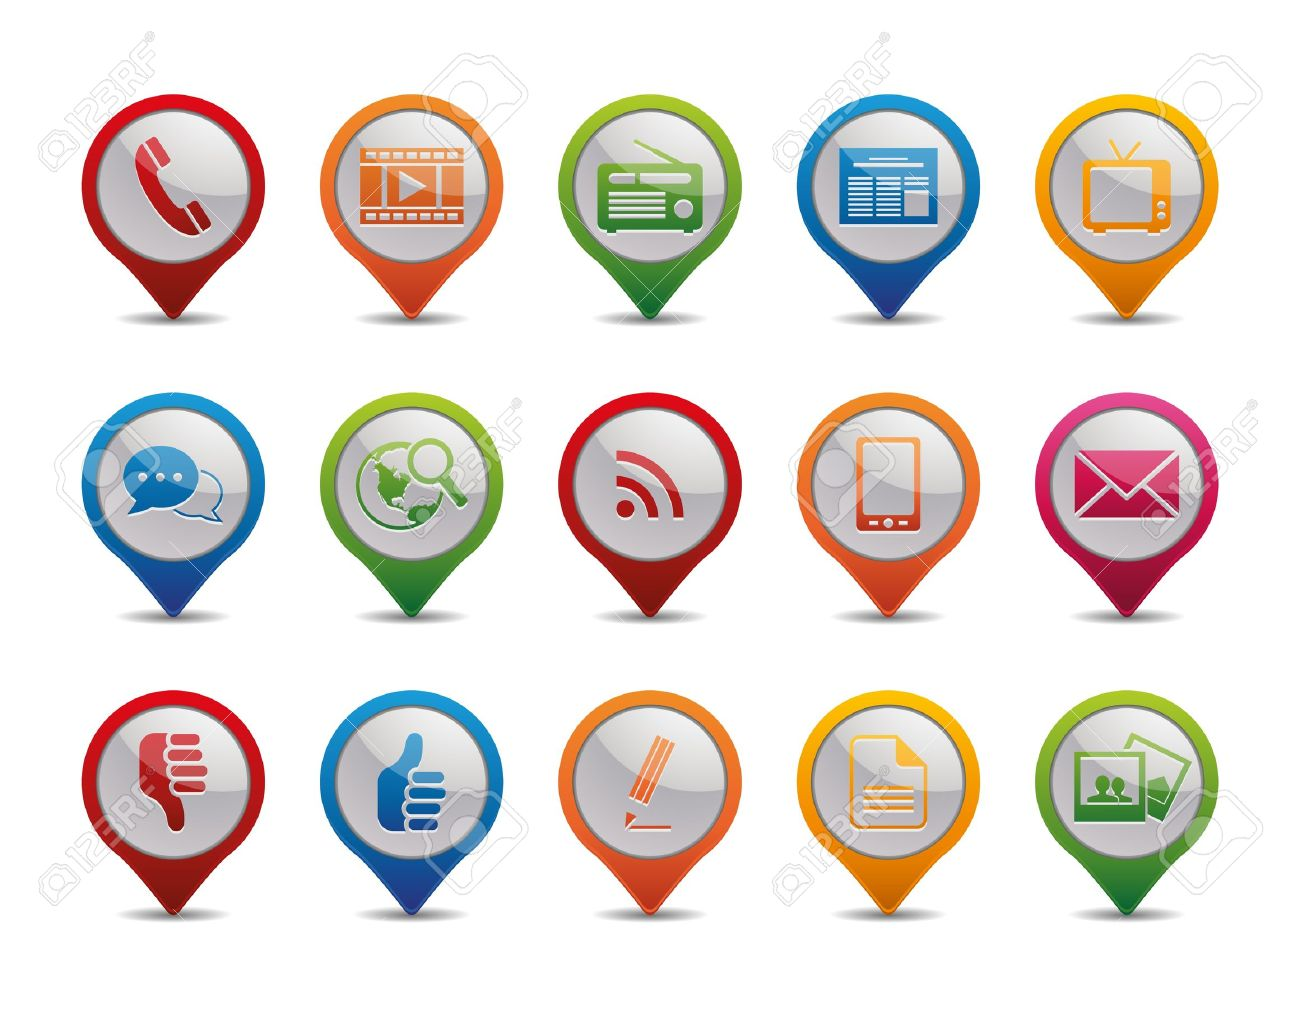 Communication icons in the form of gps icons royalty free cliparts communication icons in the form of gps icons stock vector 12809972 buycottarizona